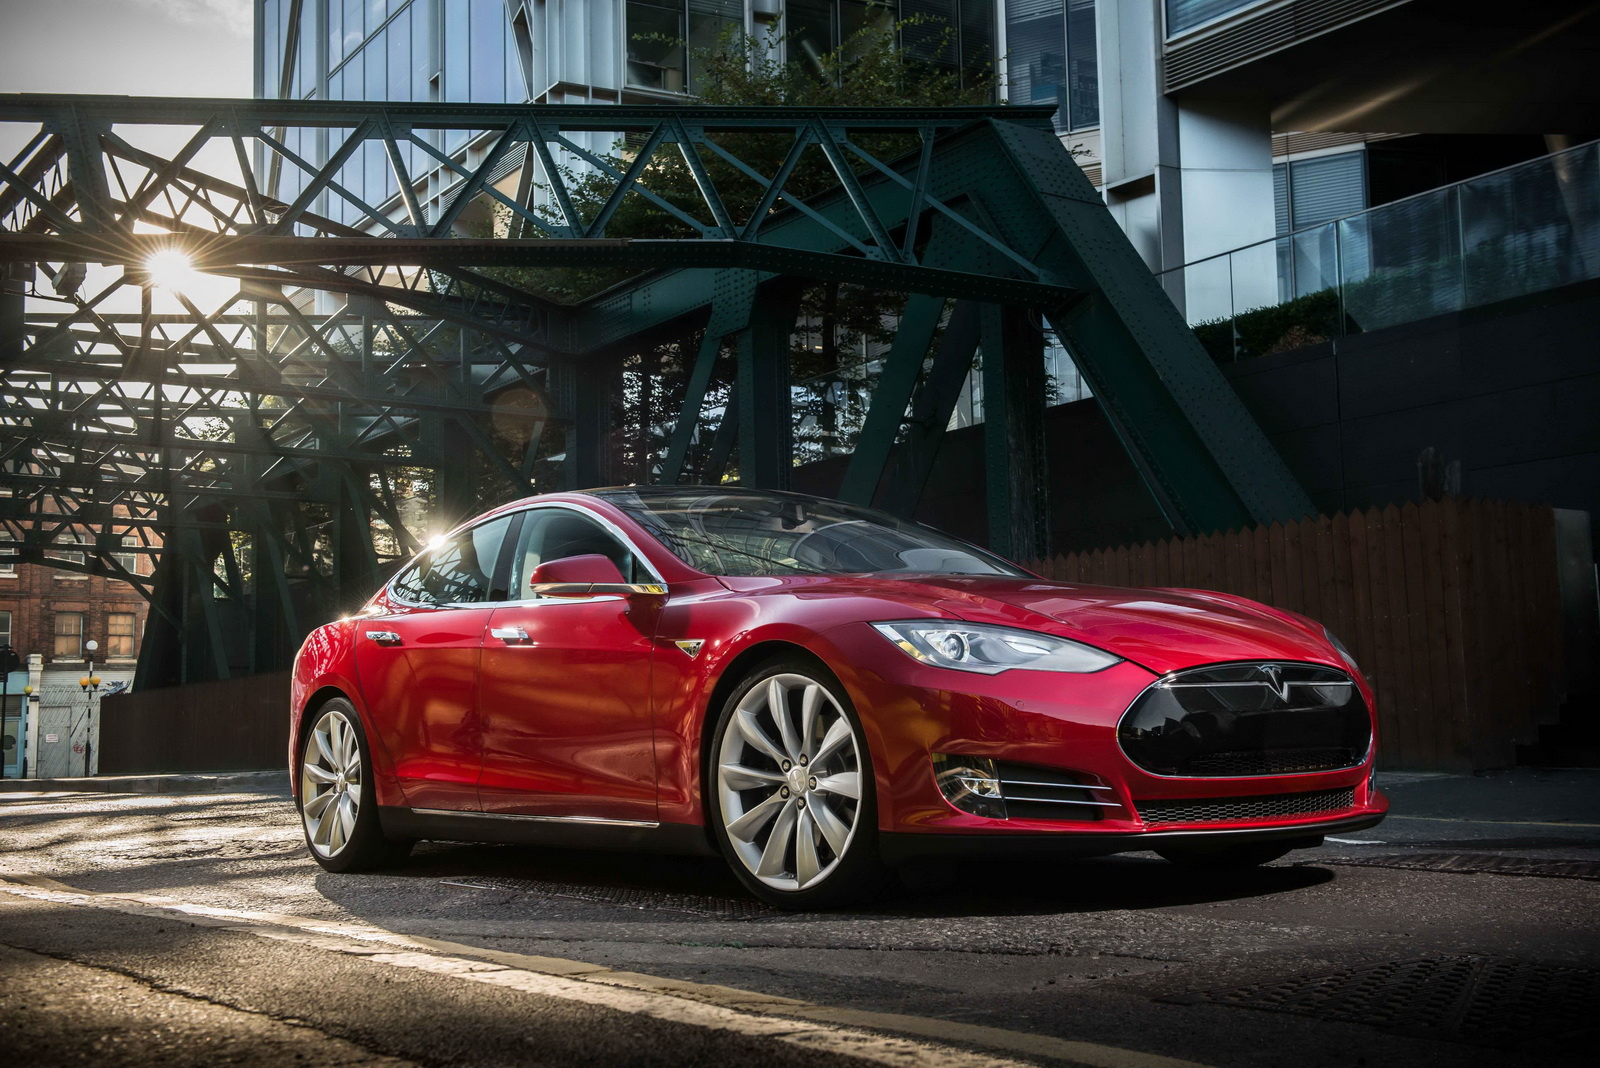 tesla 39 s new 762hp model s p90d with ludicrous speed upgrade does 1 4 mile in 10 9 sec carscoops. Black Bedroom Furniture Sets. Home Design Ideas